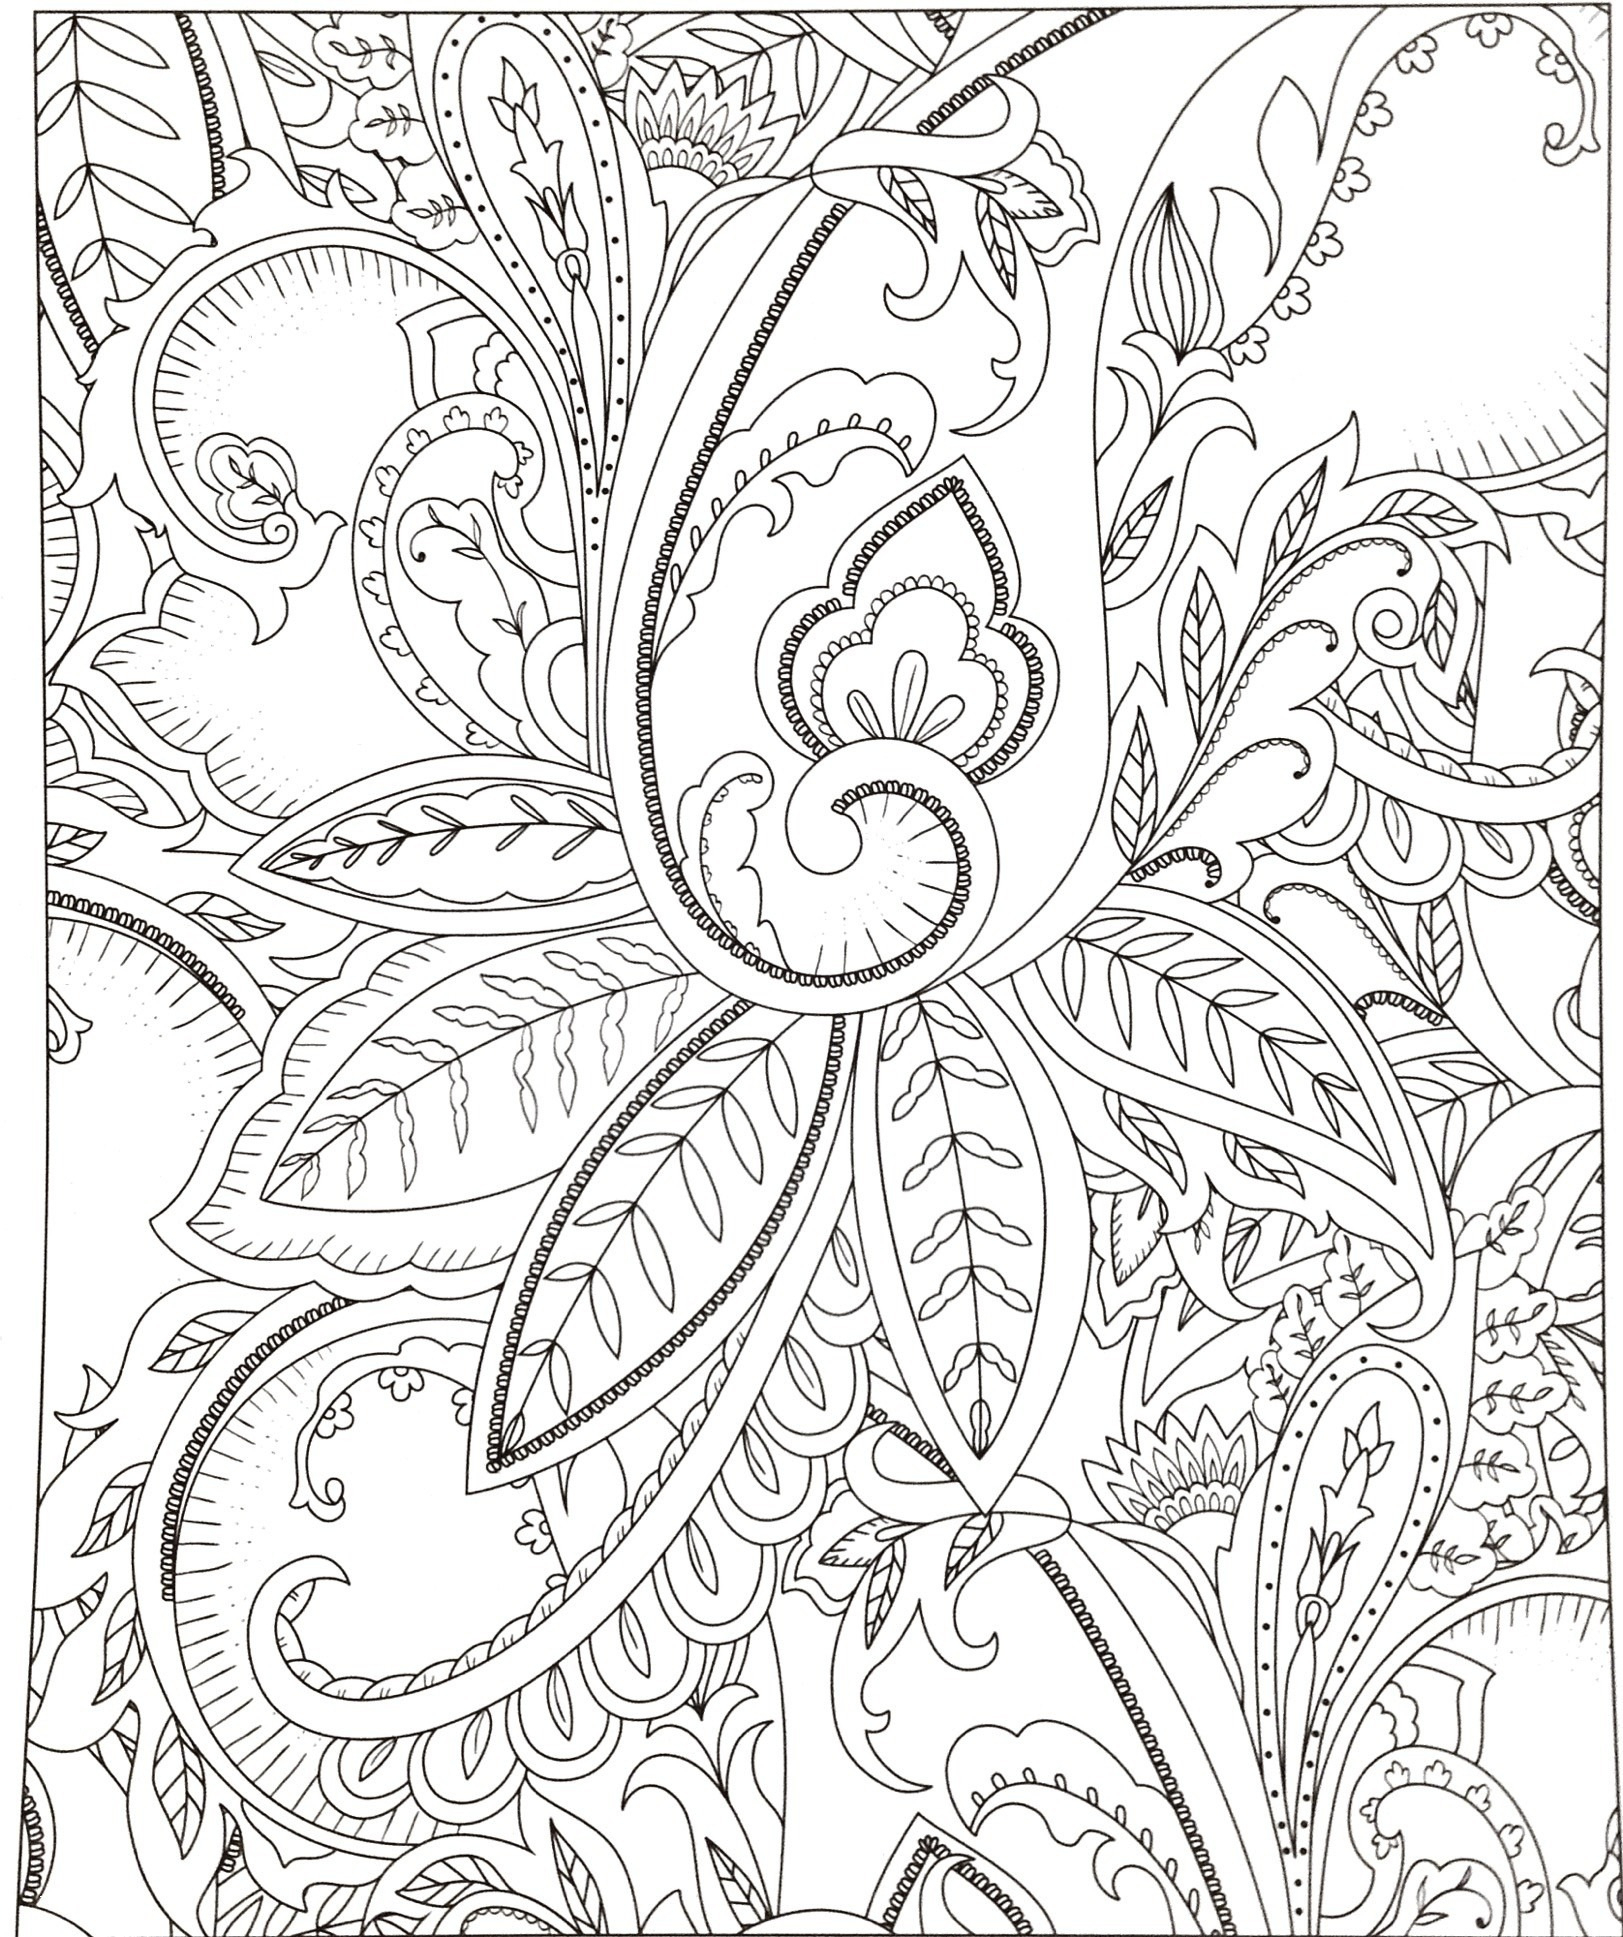 coloring pages for free Collection-Transformer Coloring Pages Free Coloring Pages for toddlers Inspirational Free Coloring Sheets for Kindergarten Awesome 8-b